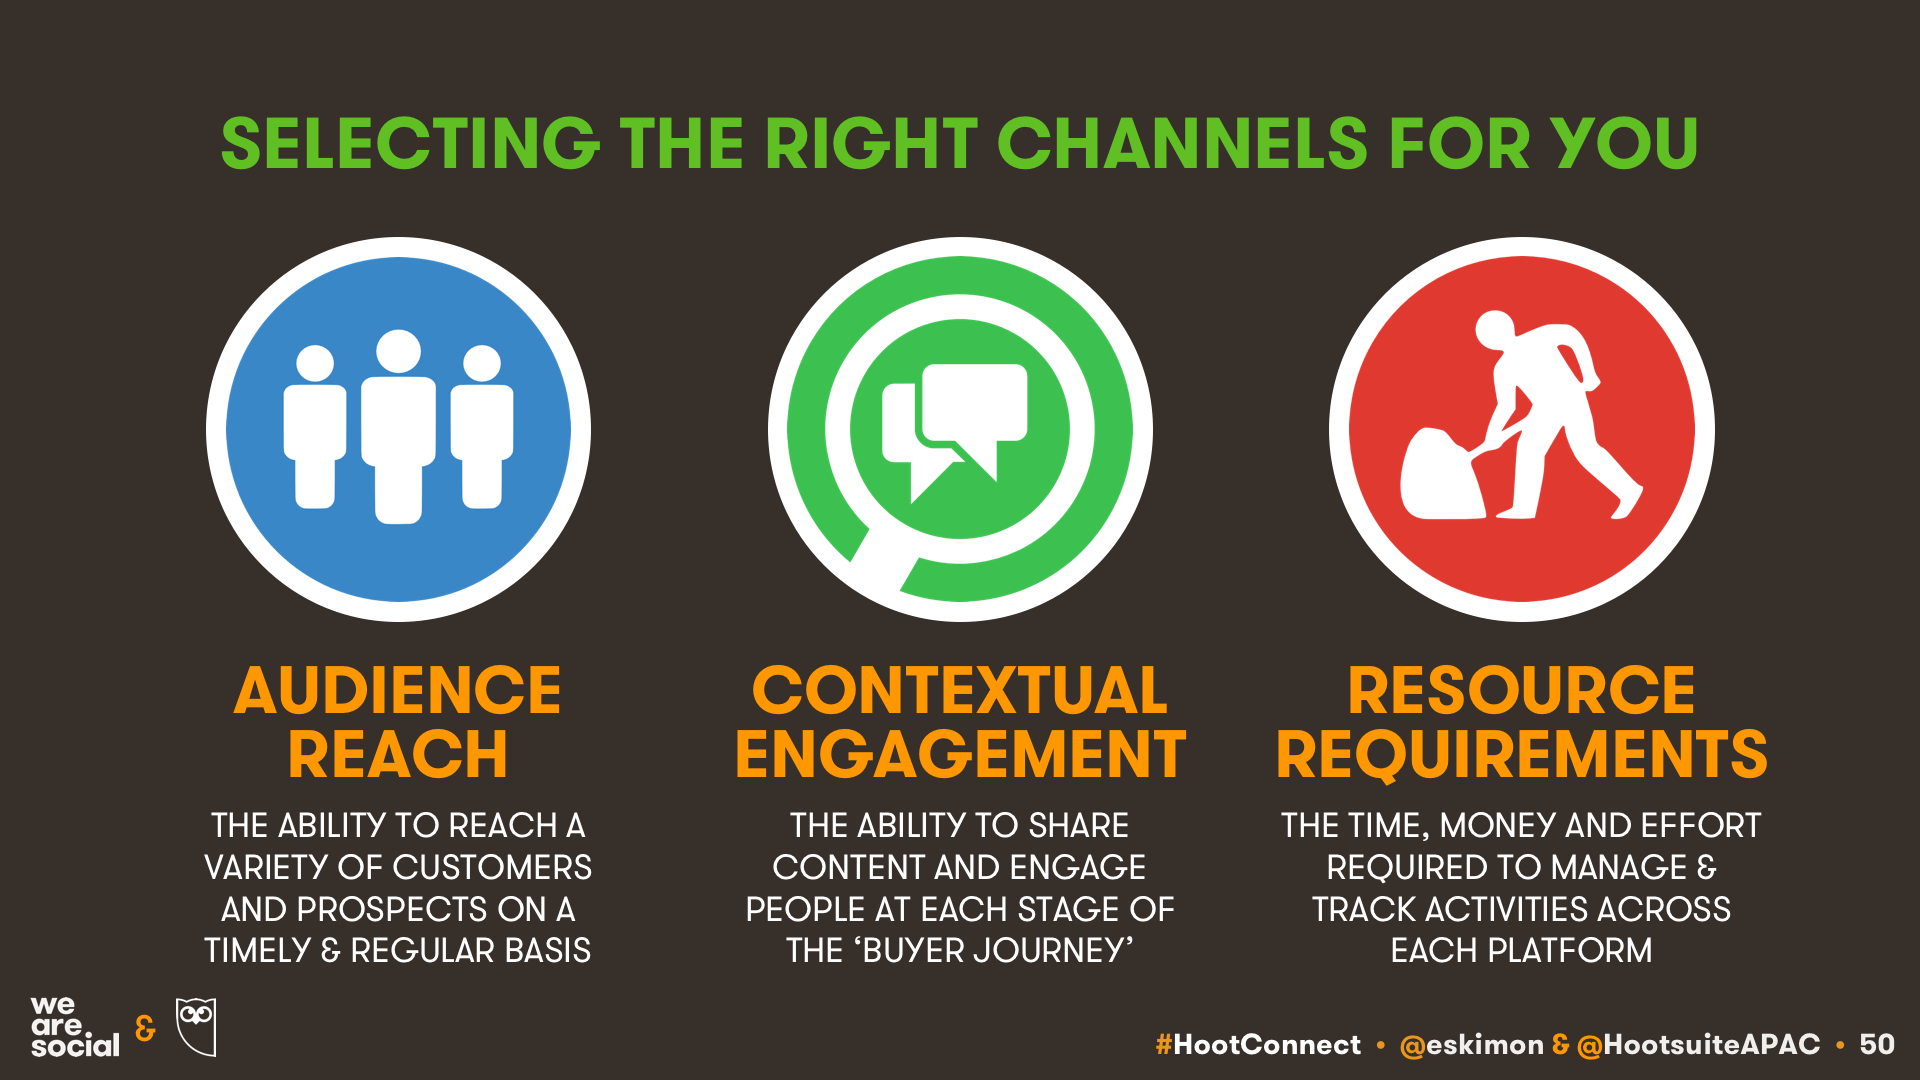 KEPIOS: CRITERIA FOR SELECTING SOCIAL SELLING CHANNELS AND PLATFORMS